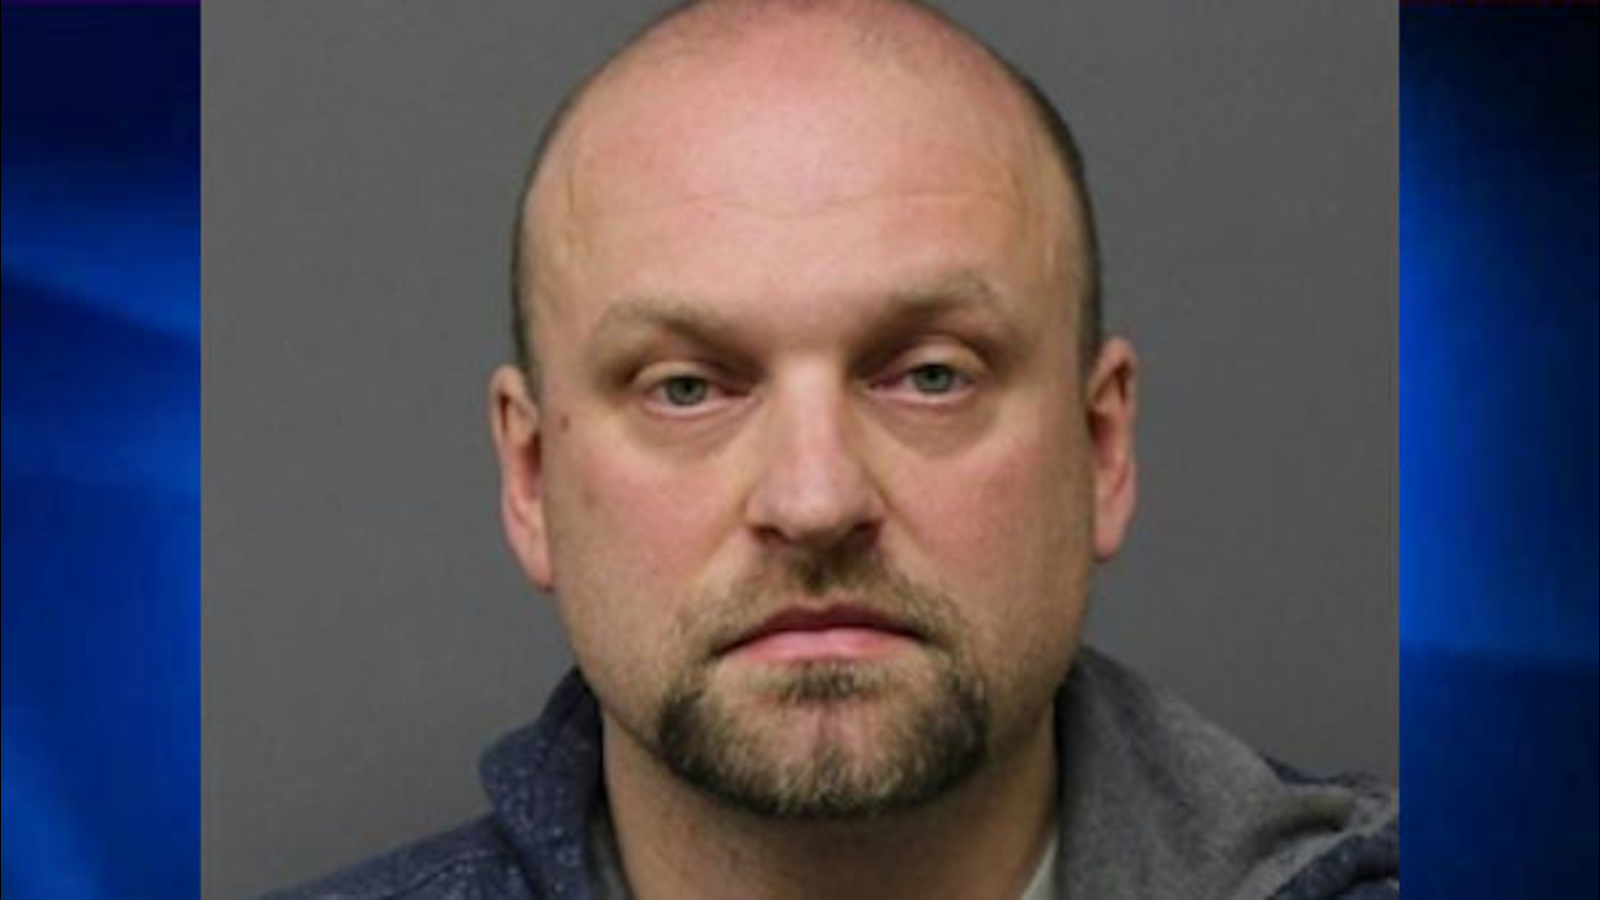 nj priest arrested on sex counts in Torquay